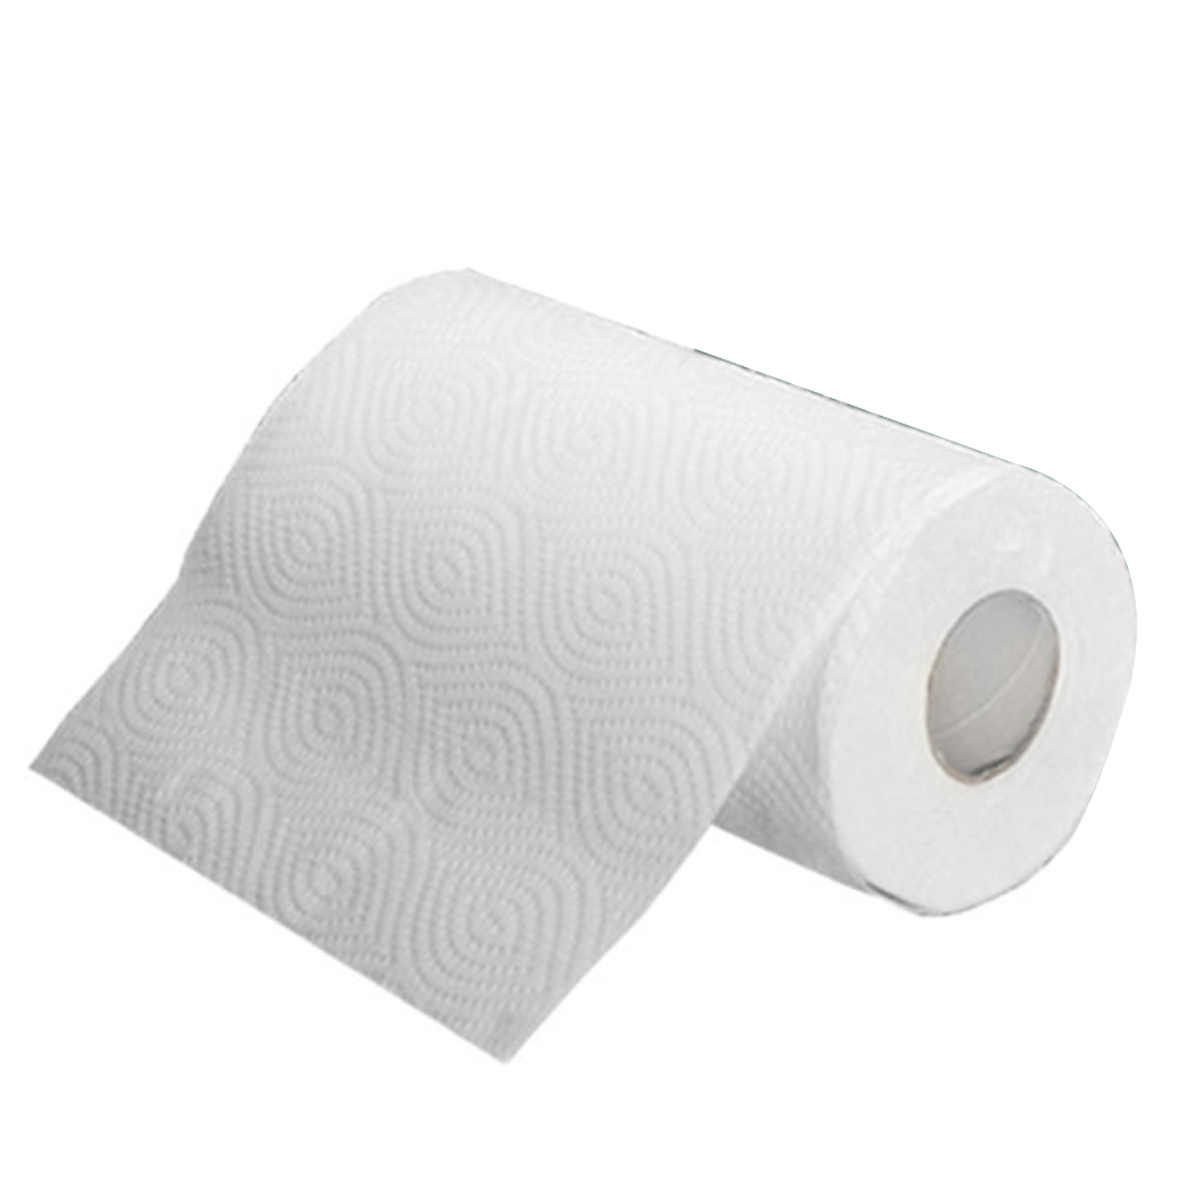 2 Roll Of Kitchen Paper Towels Water Oil Absorbent Roll Thick Paper 2-Ply 75 Sheets Per Roll Hand Cleaning Primary Wood Pulp